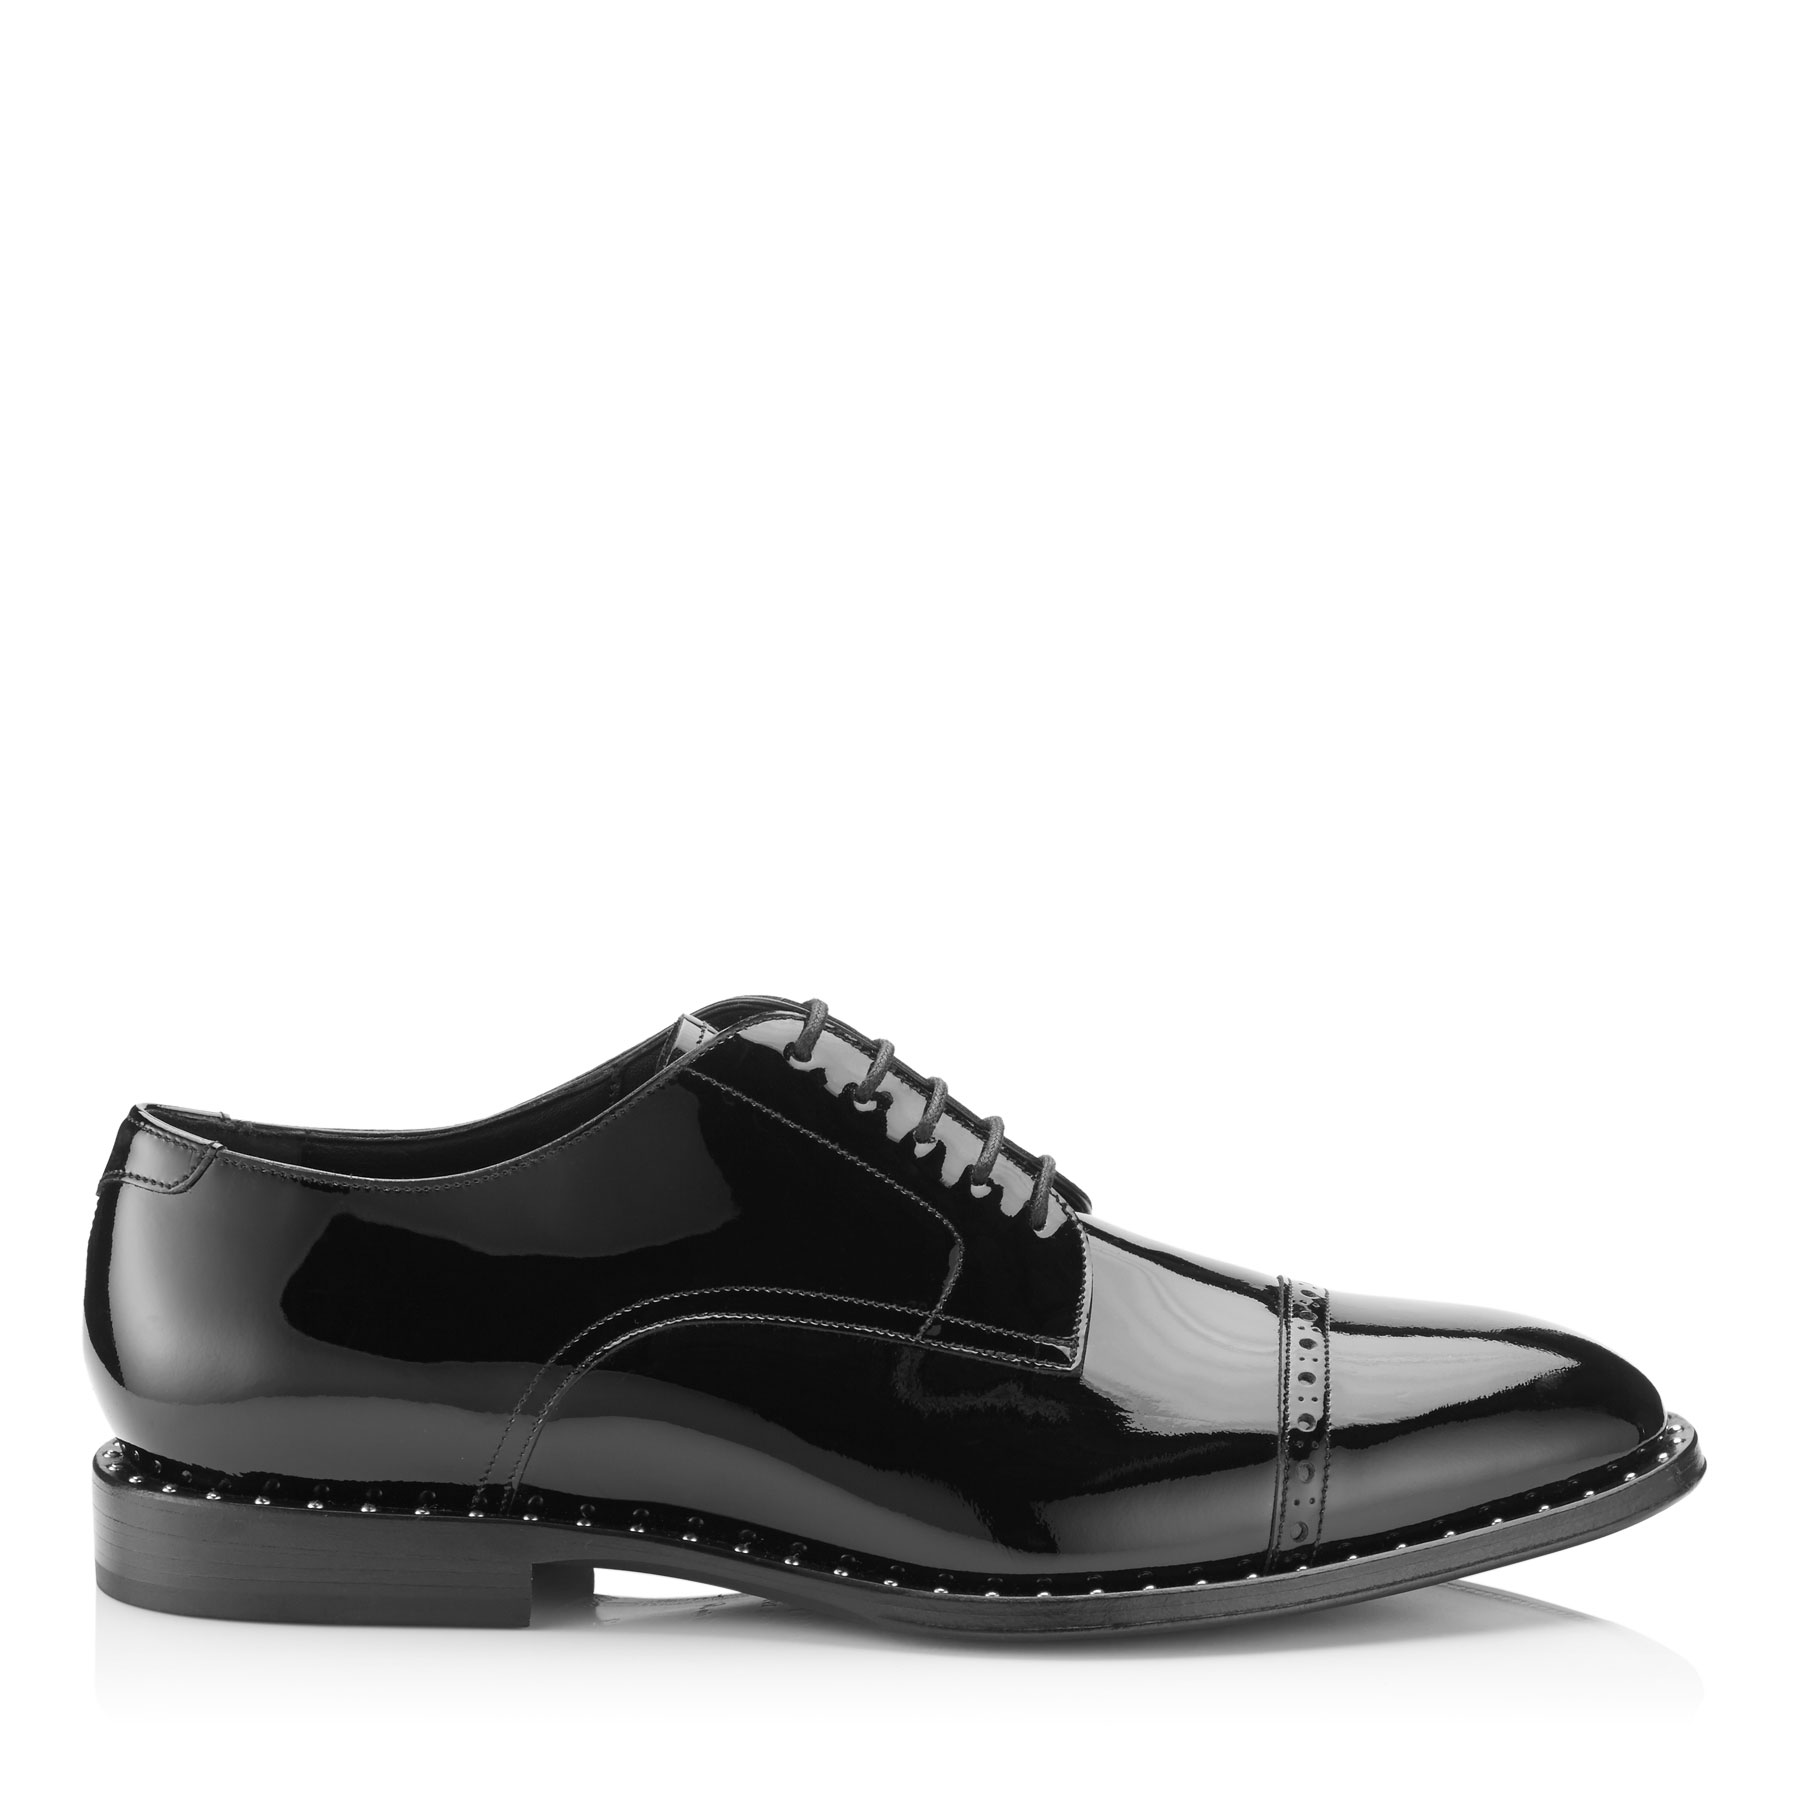 e03b4b3af57b Mens Designer Shoes